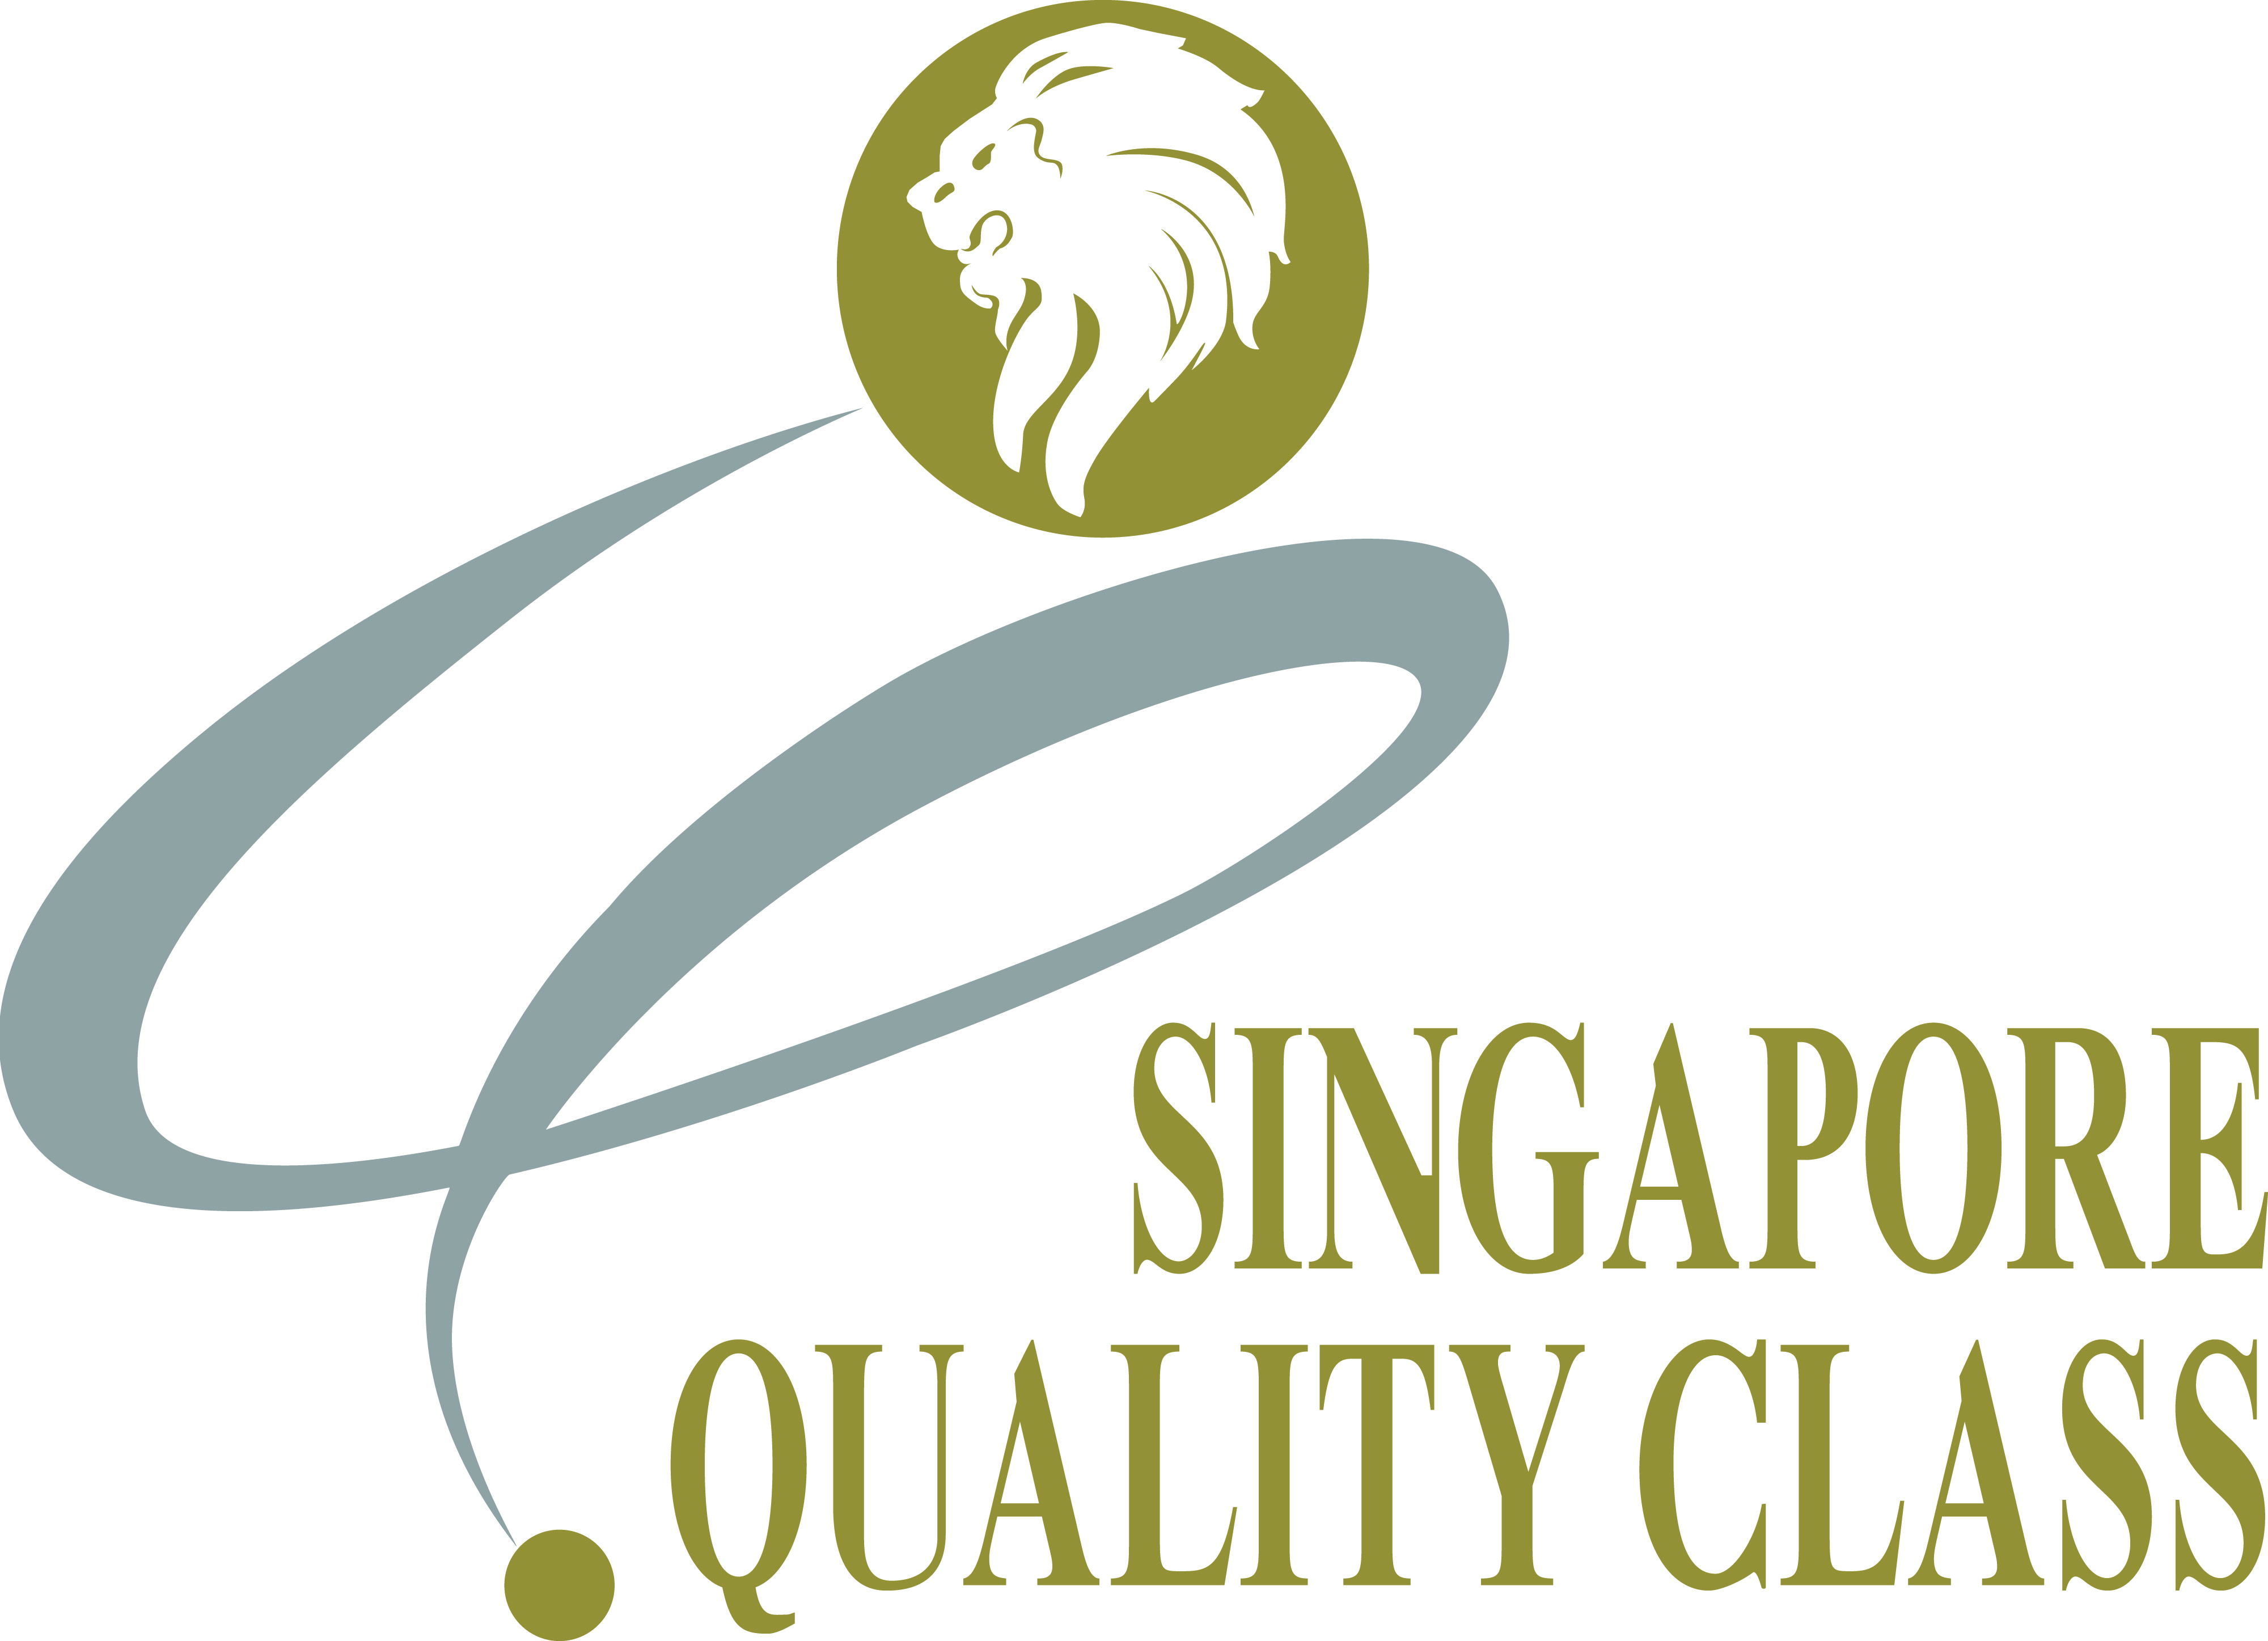 Nus High School Attains The Singapore Quality Class Certification